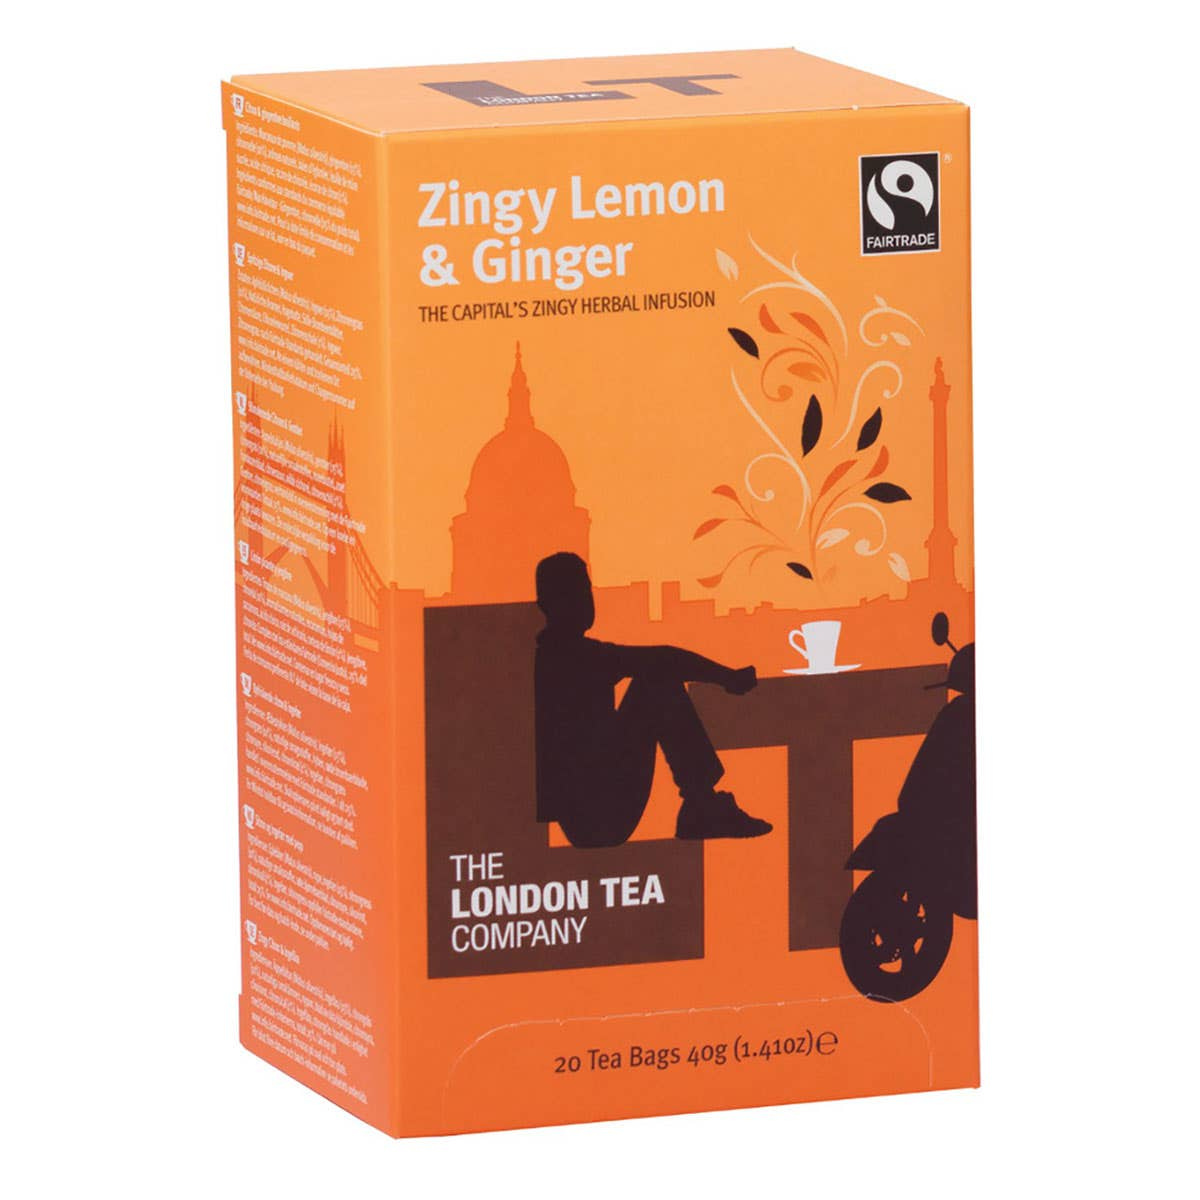 London Tea Company Zingy Lemon and Ginger Tea Bags (6x20 bags) CASE